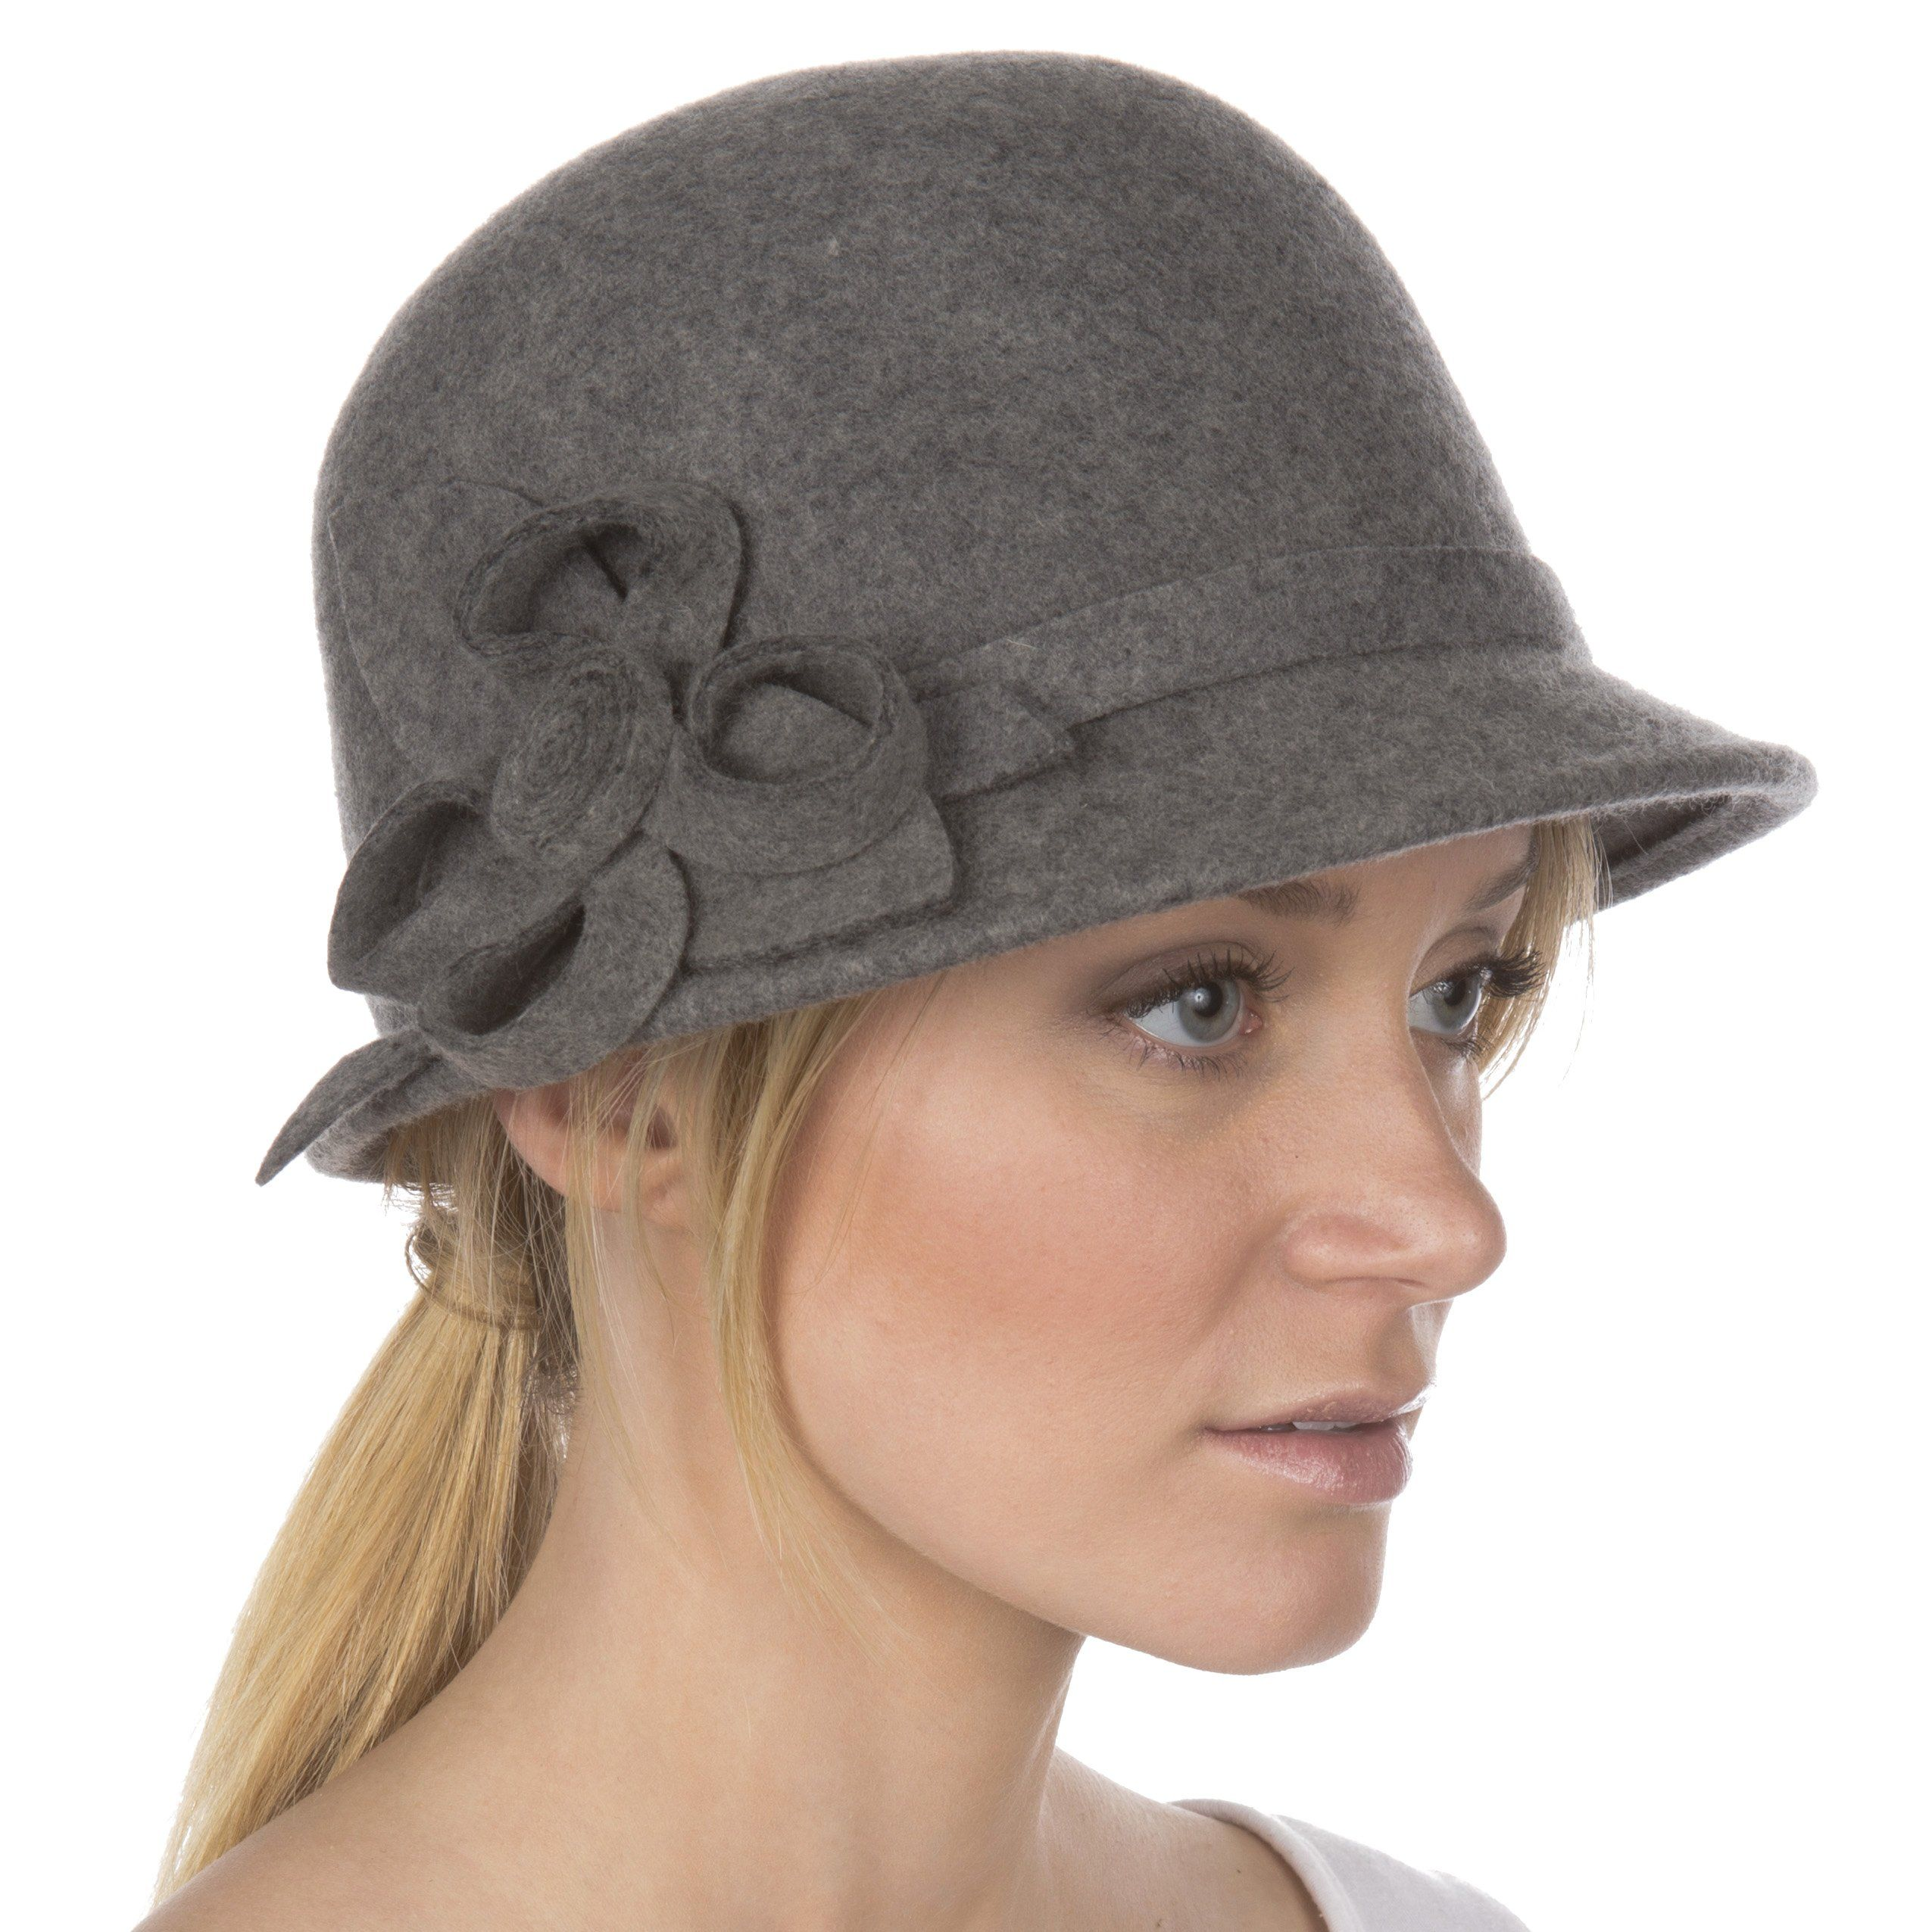 1315f73d9 Womens Bernadette Vintage Style 100% Wool Cloche Bucket Winter Hat ...